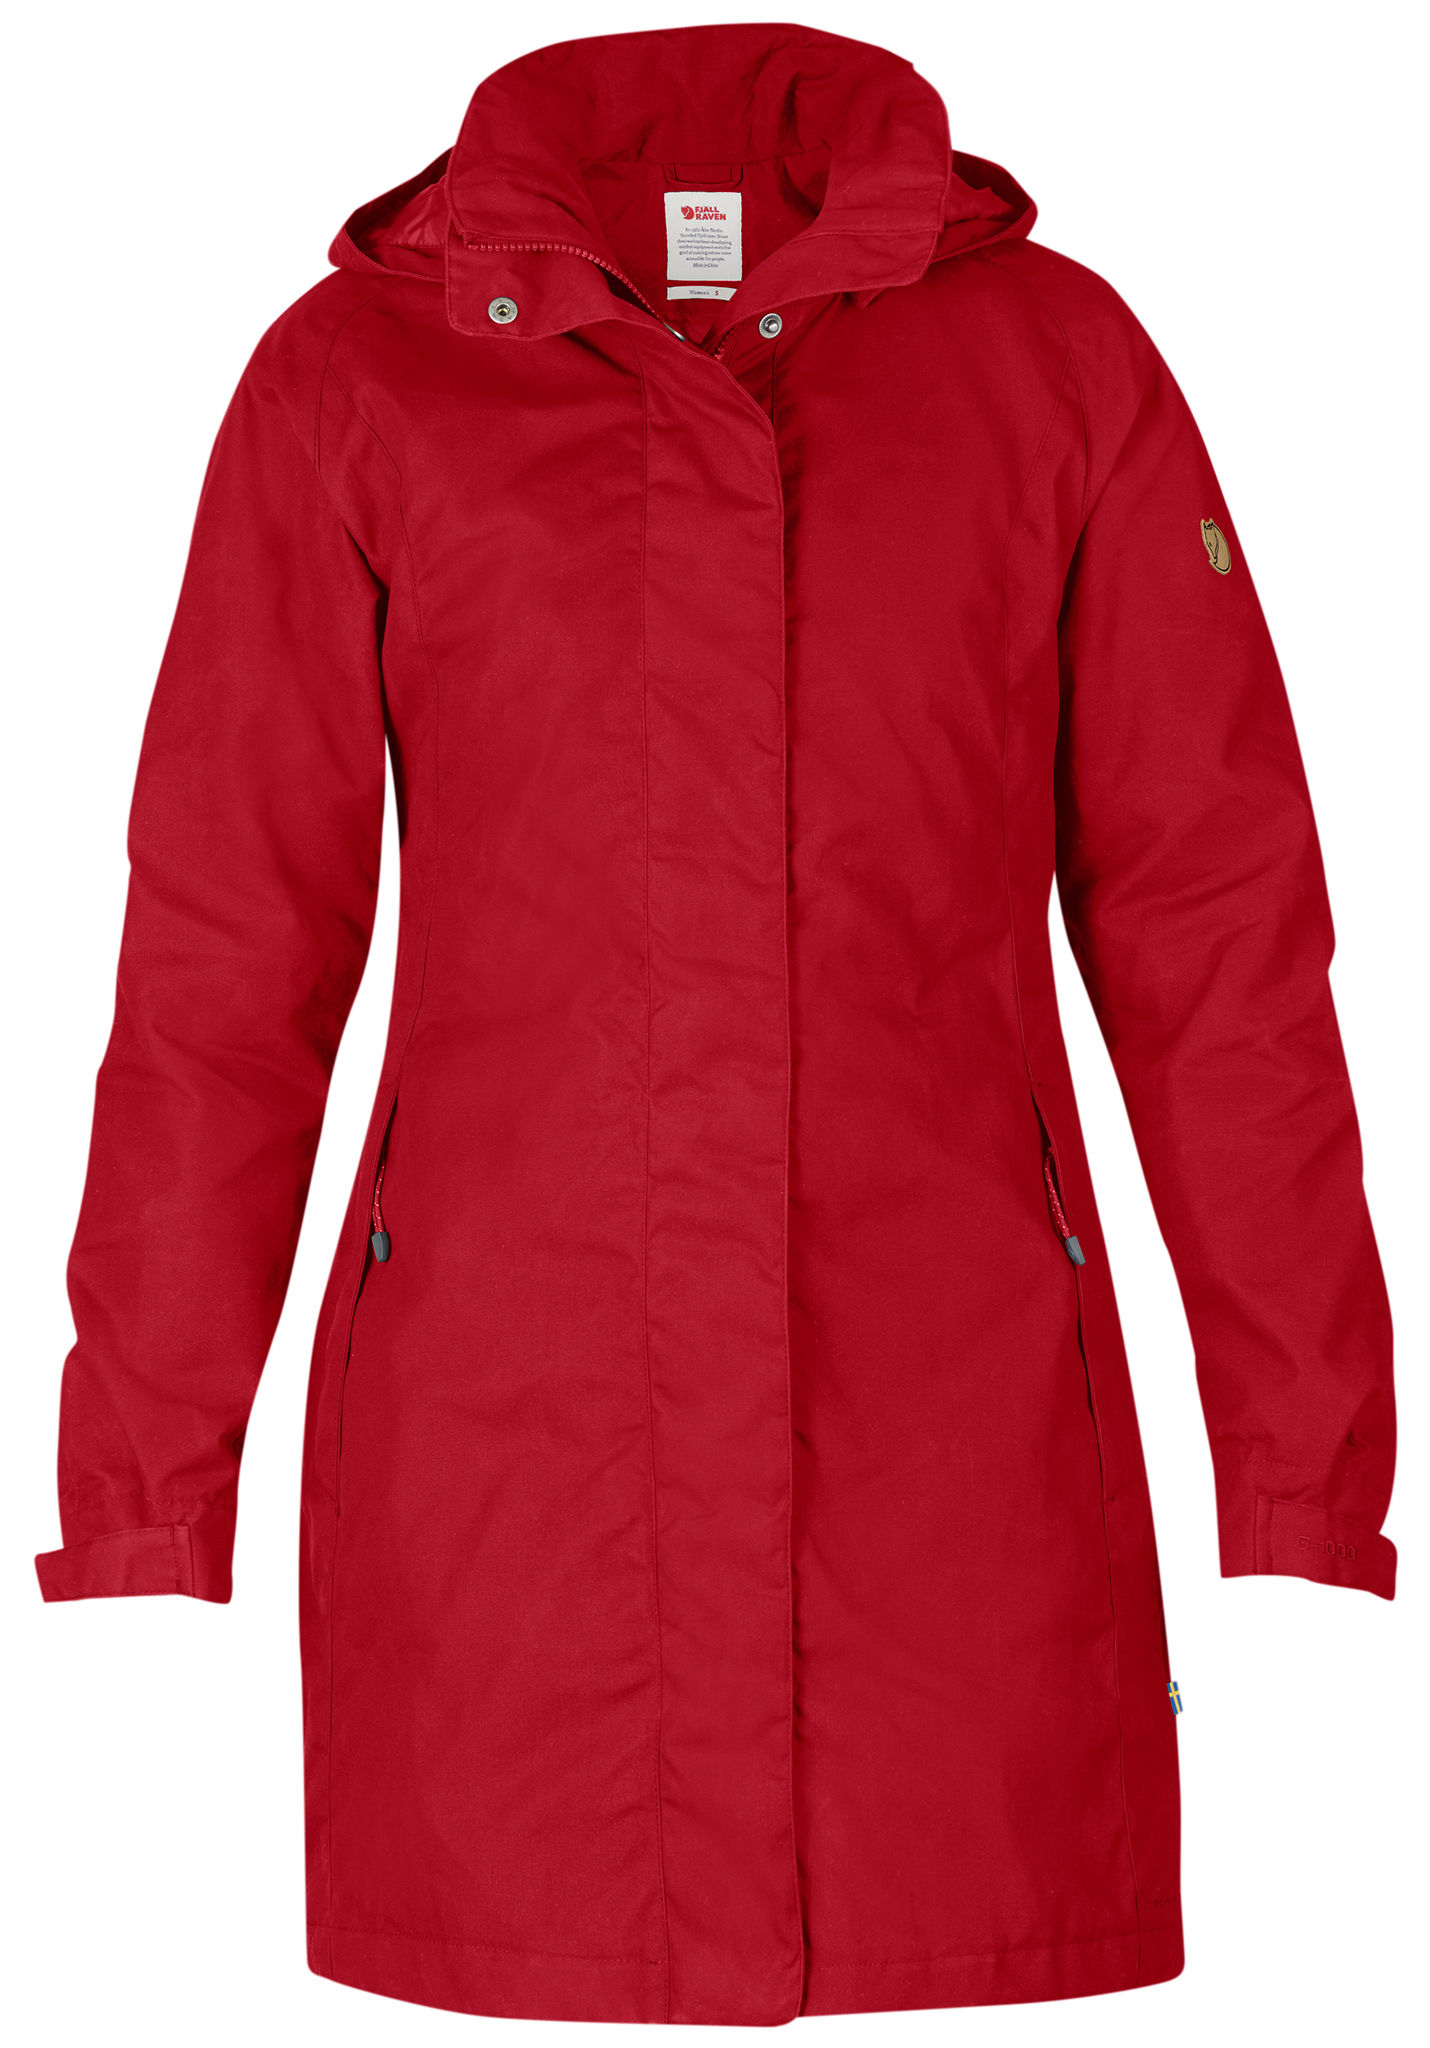 FJÄLLRÄVEN Una - Functional Jacket for Women - Red - Planet Sports